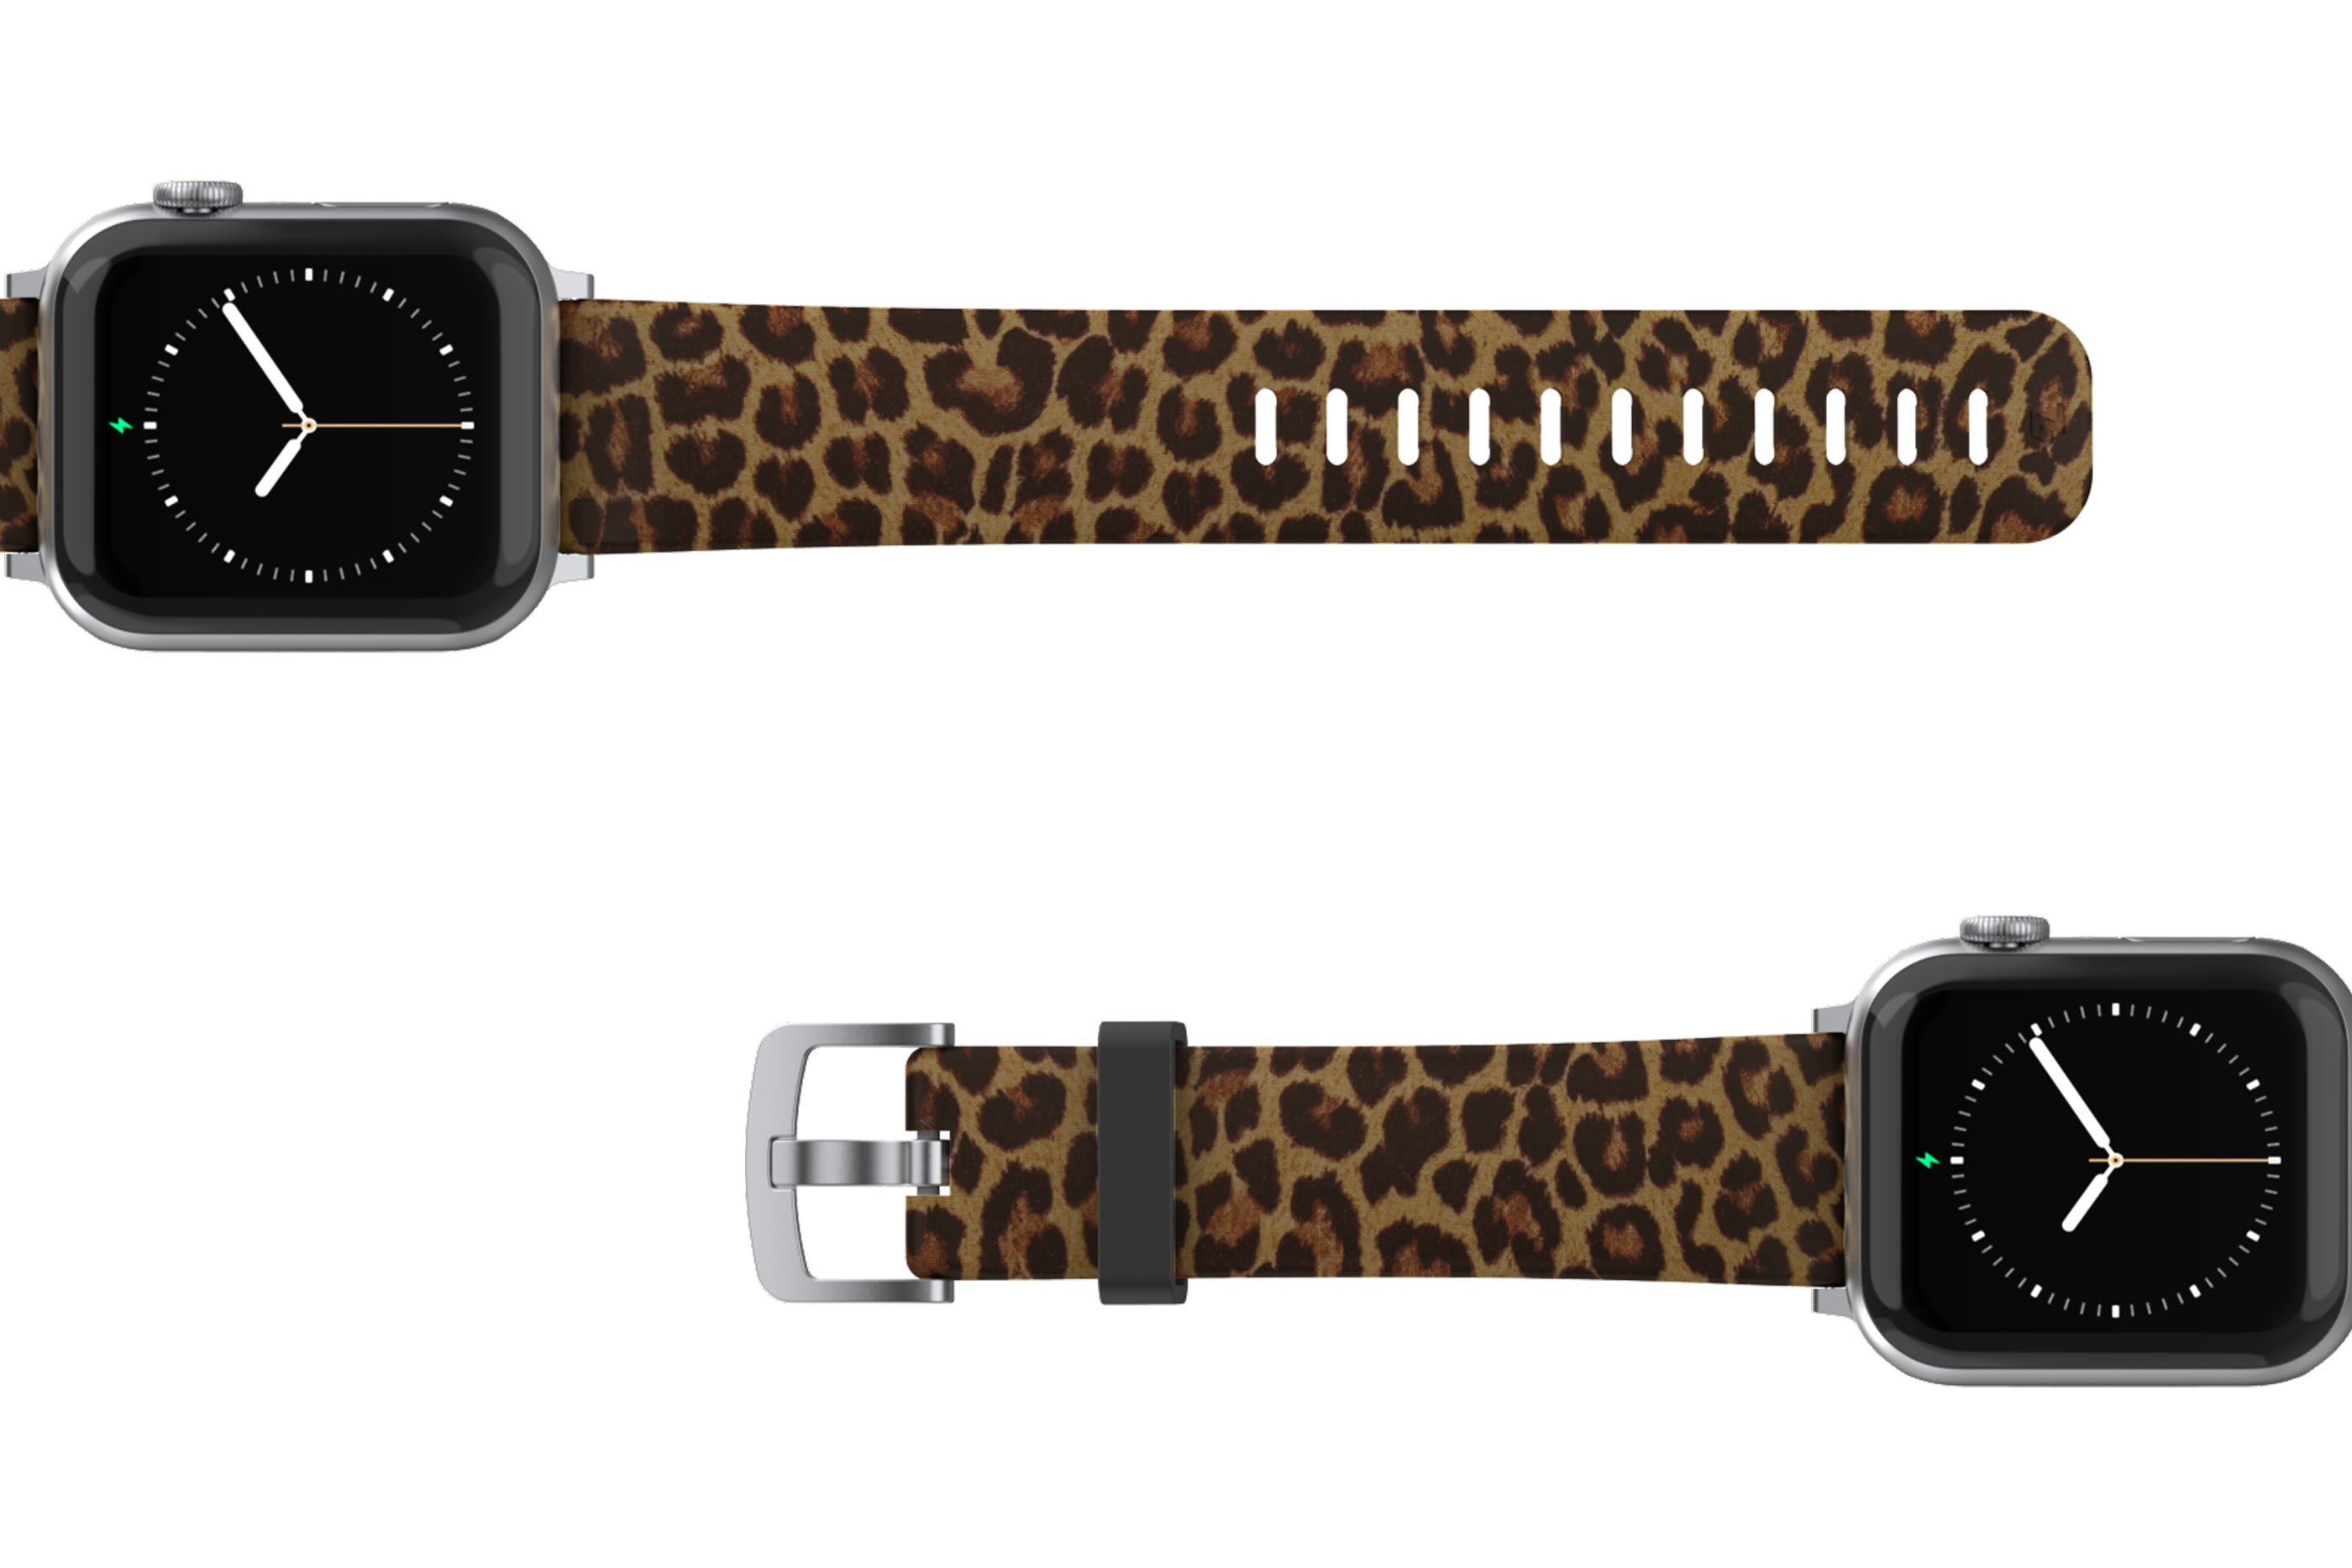 Leopard Apple Watch Band with silver hardware viewed top down